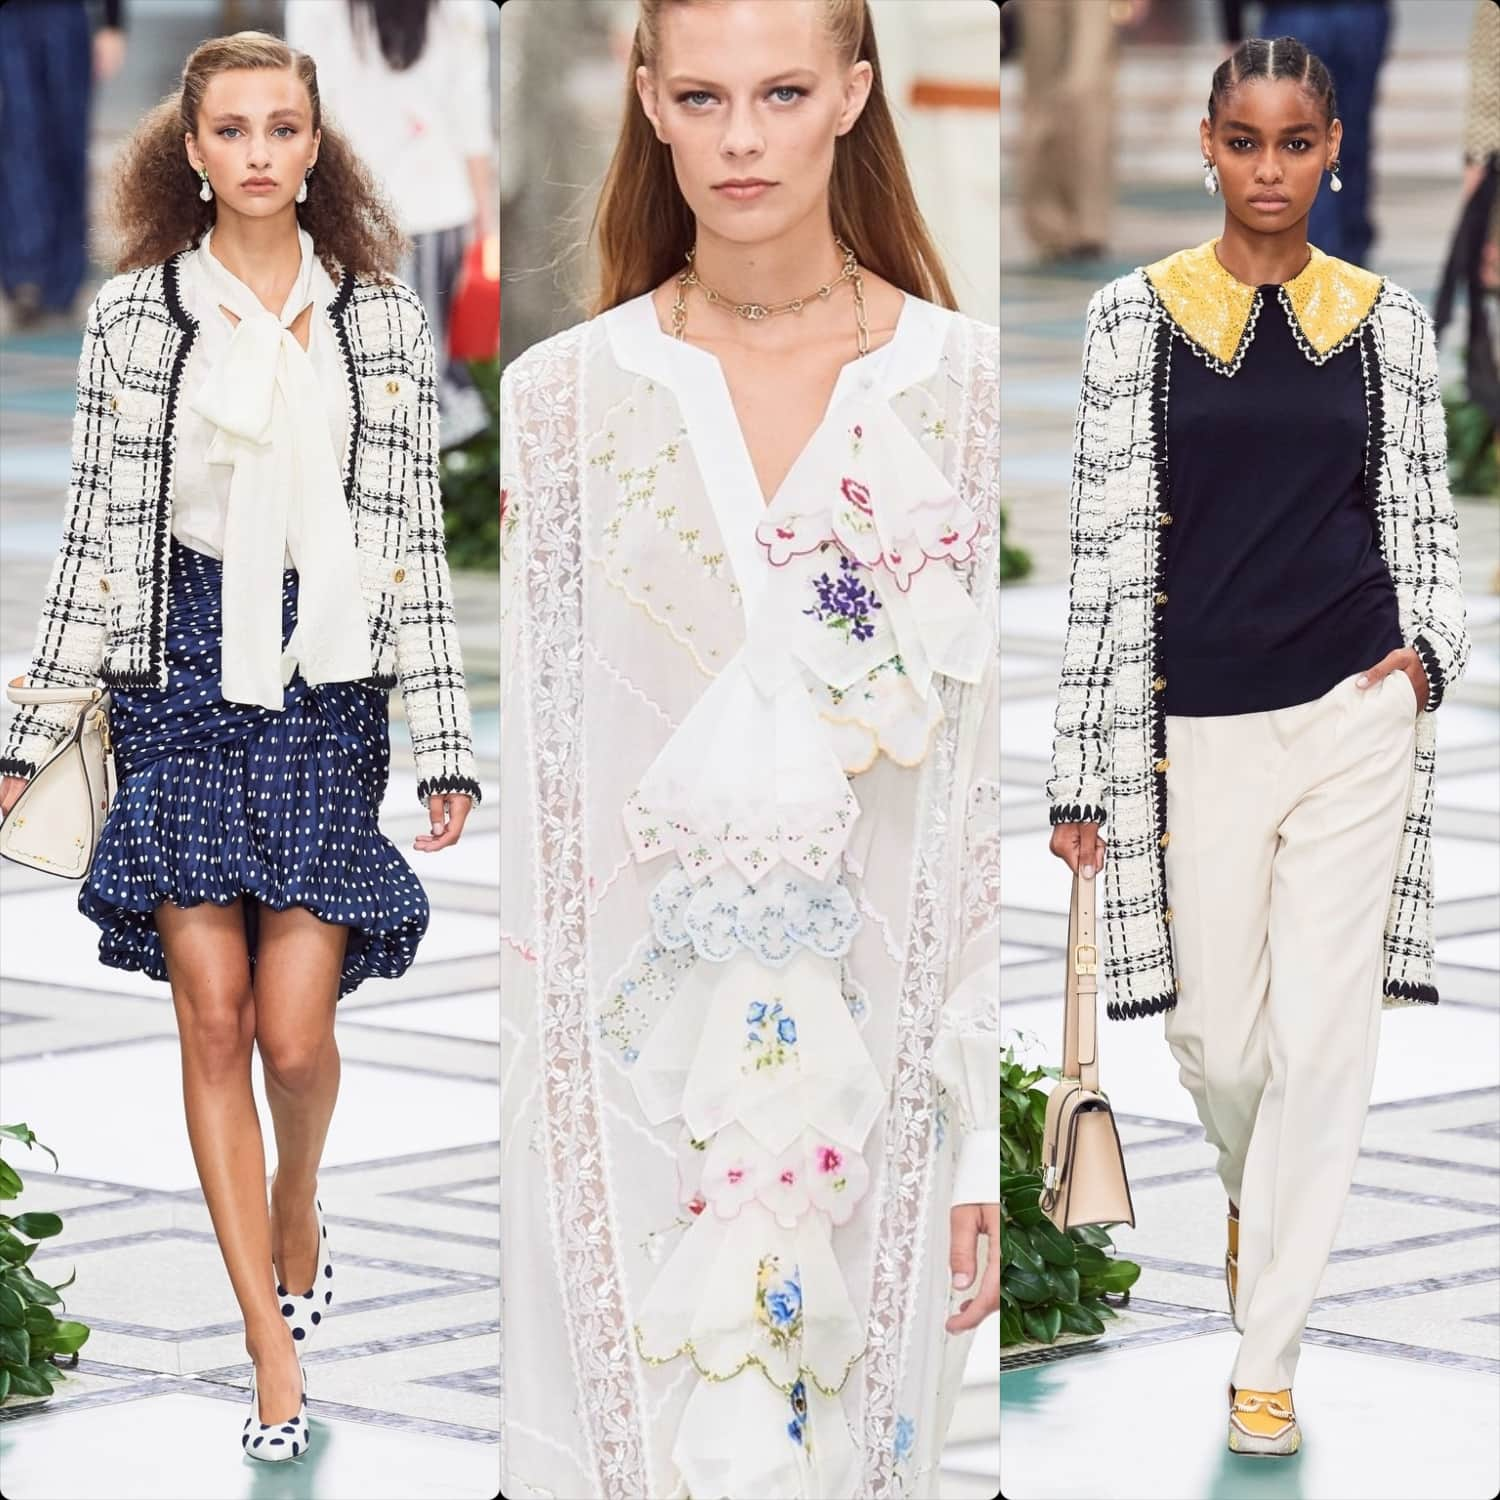 Tory Burch Spring Summer 2020 New York. RUNWAY MAGAZINE ® Collections. RUNWAY NOW / RUNWAY NEW